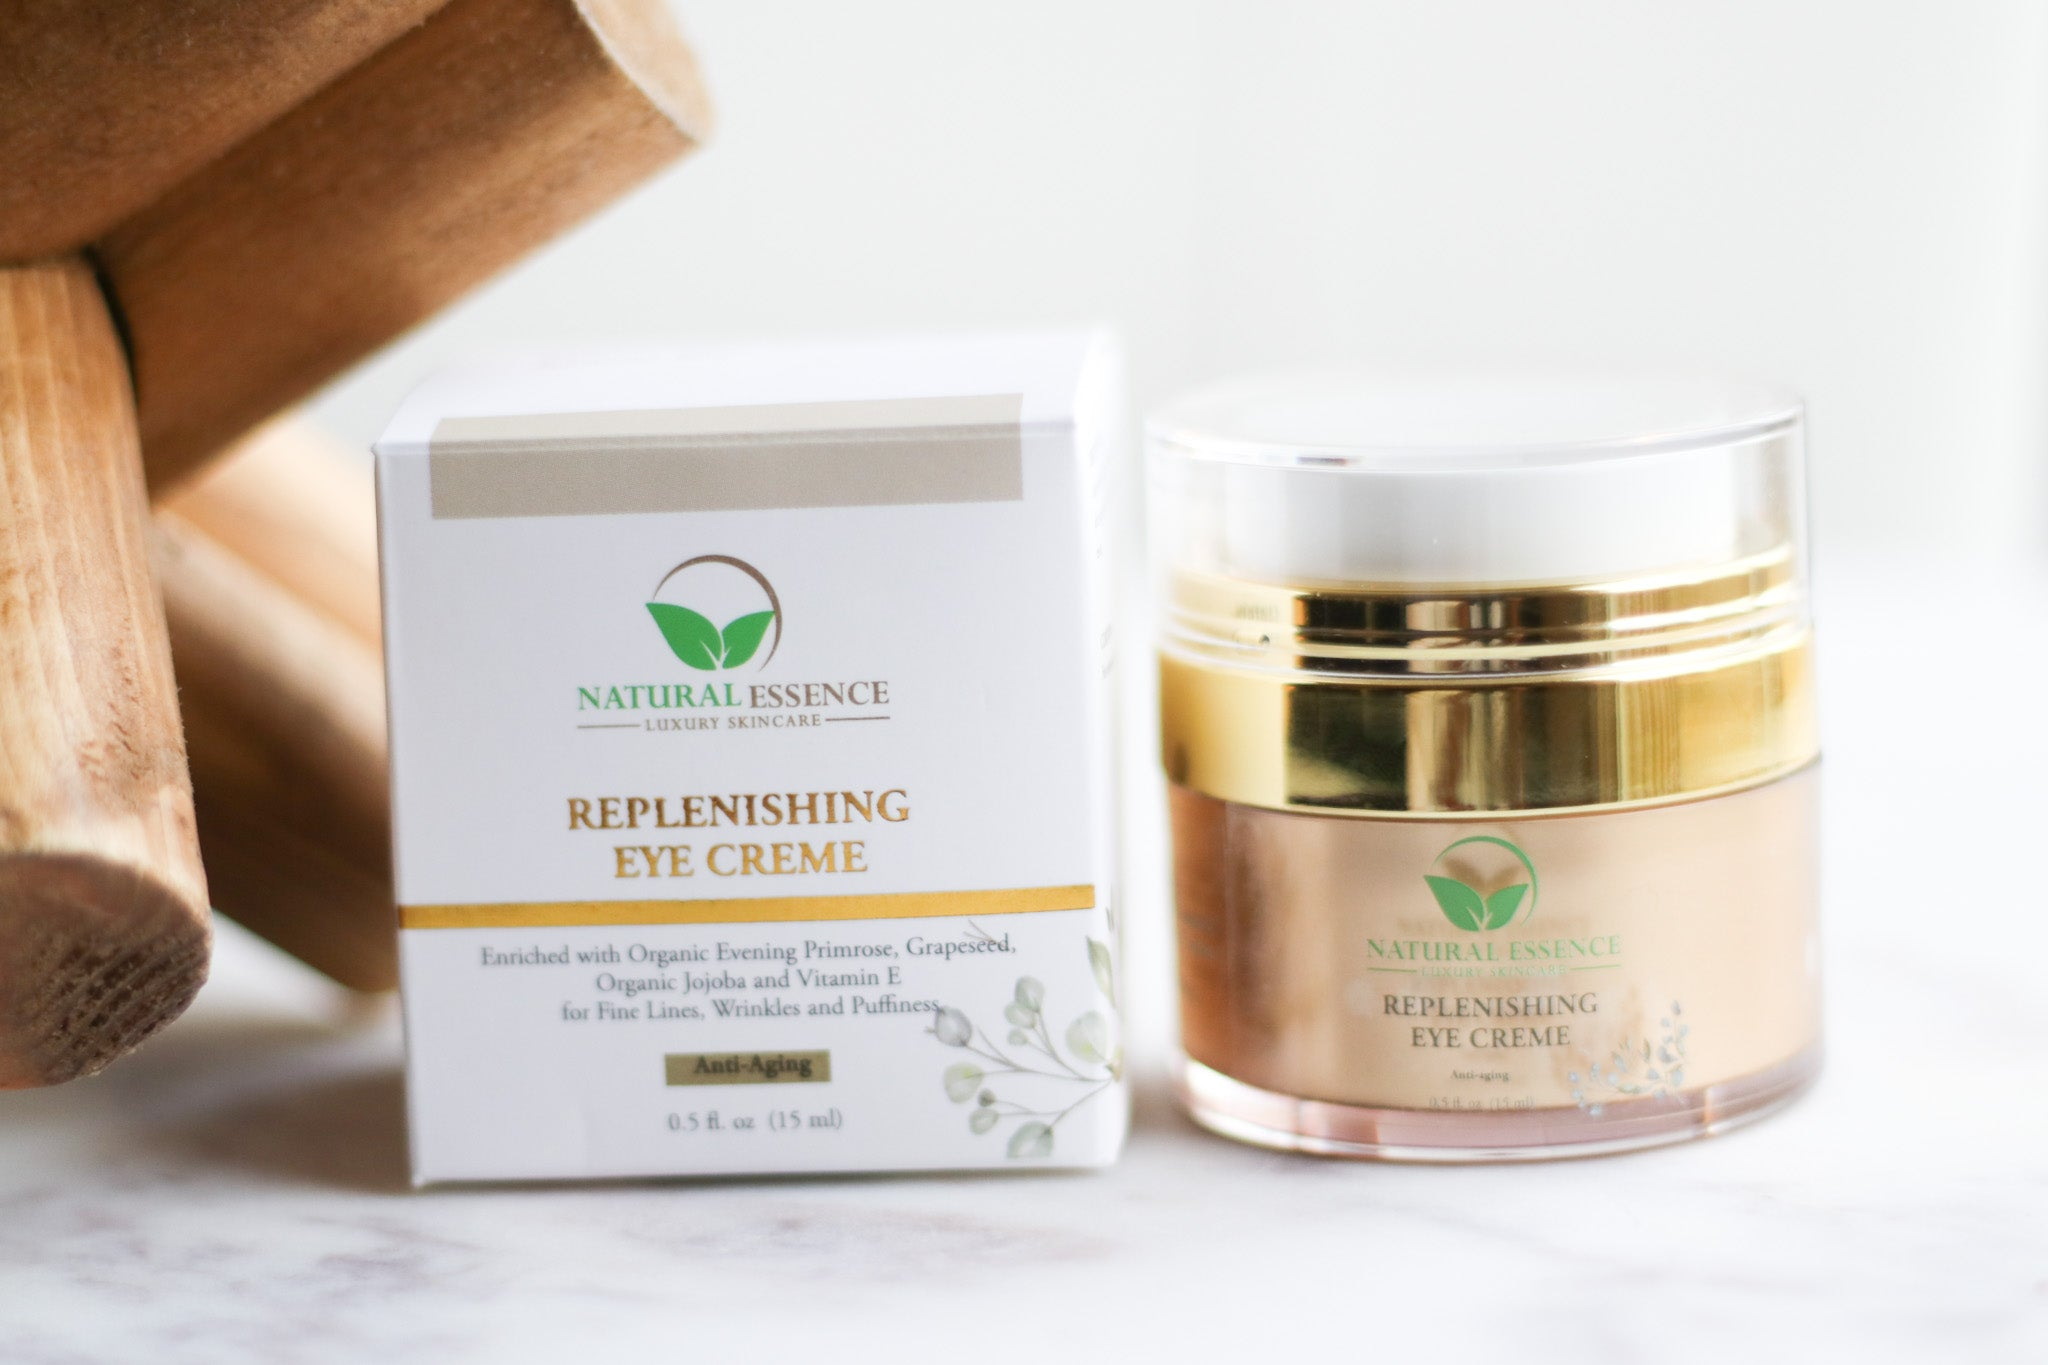 REPLENISHING EYE CREME